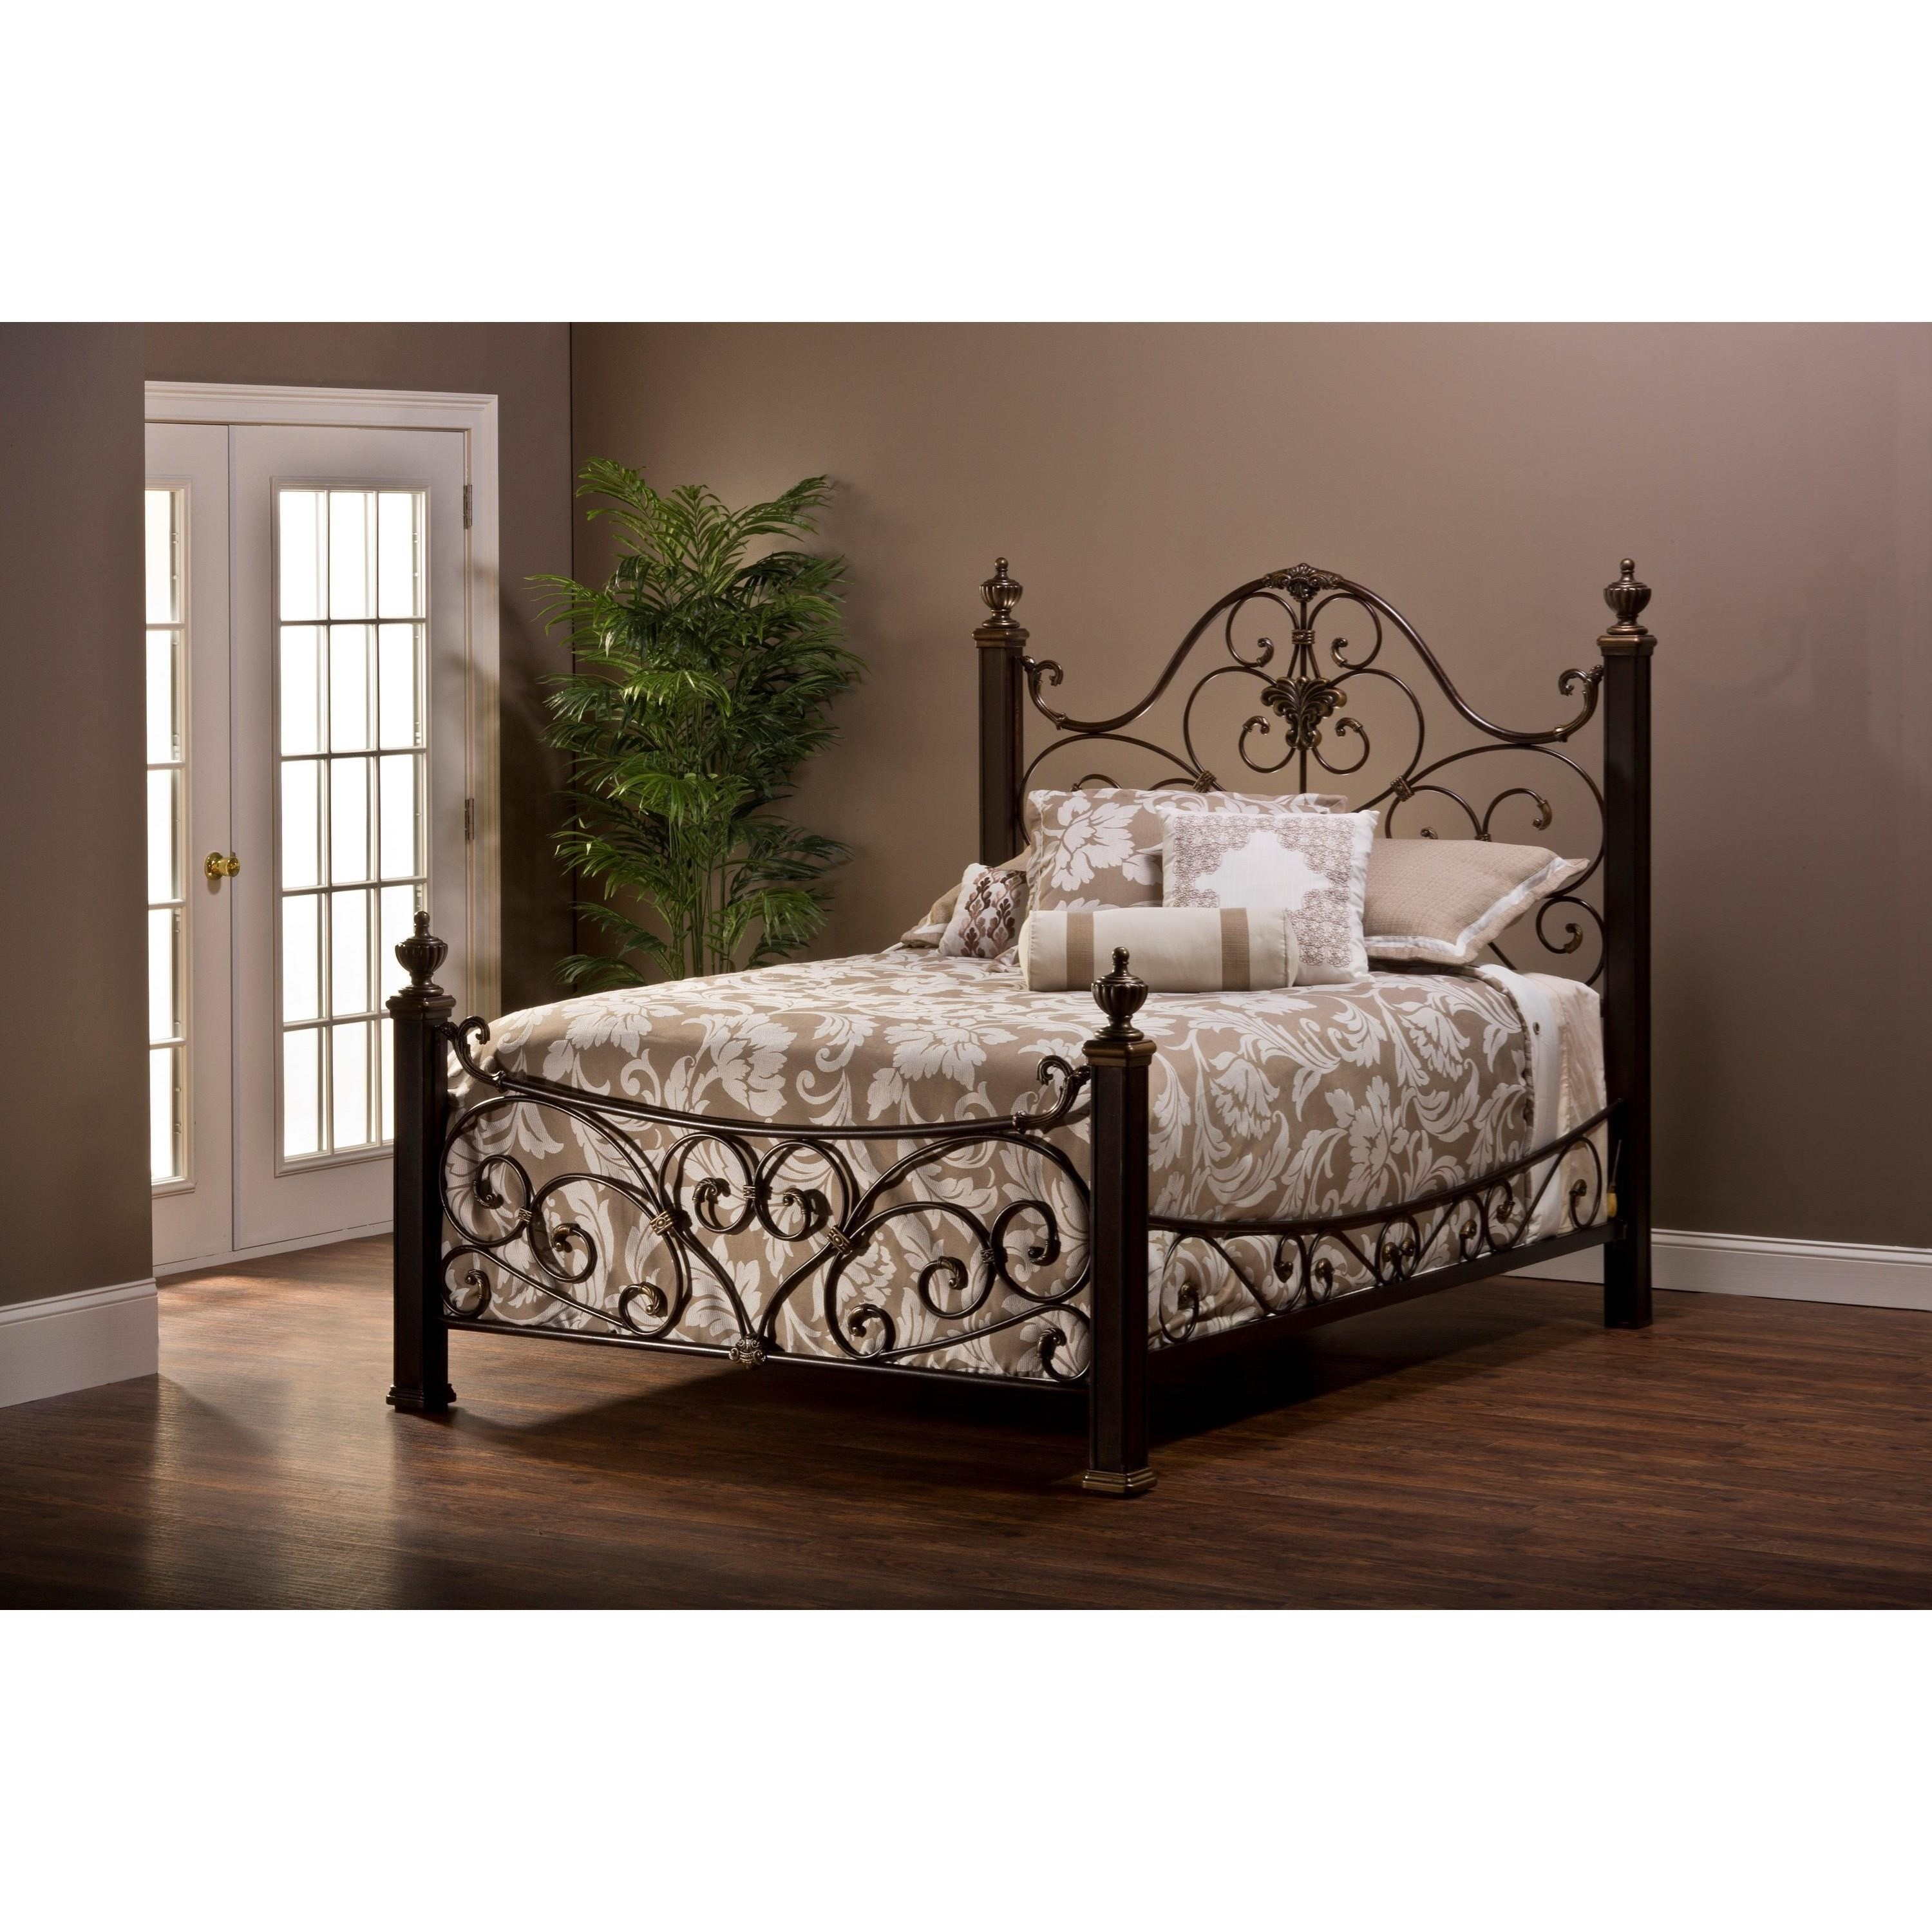 Metal Beds Queen Bed Set with Rails at Sadler's Home Furnishings